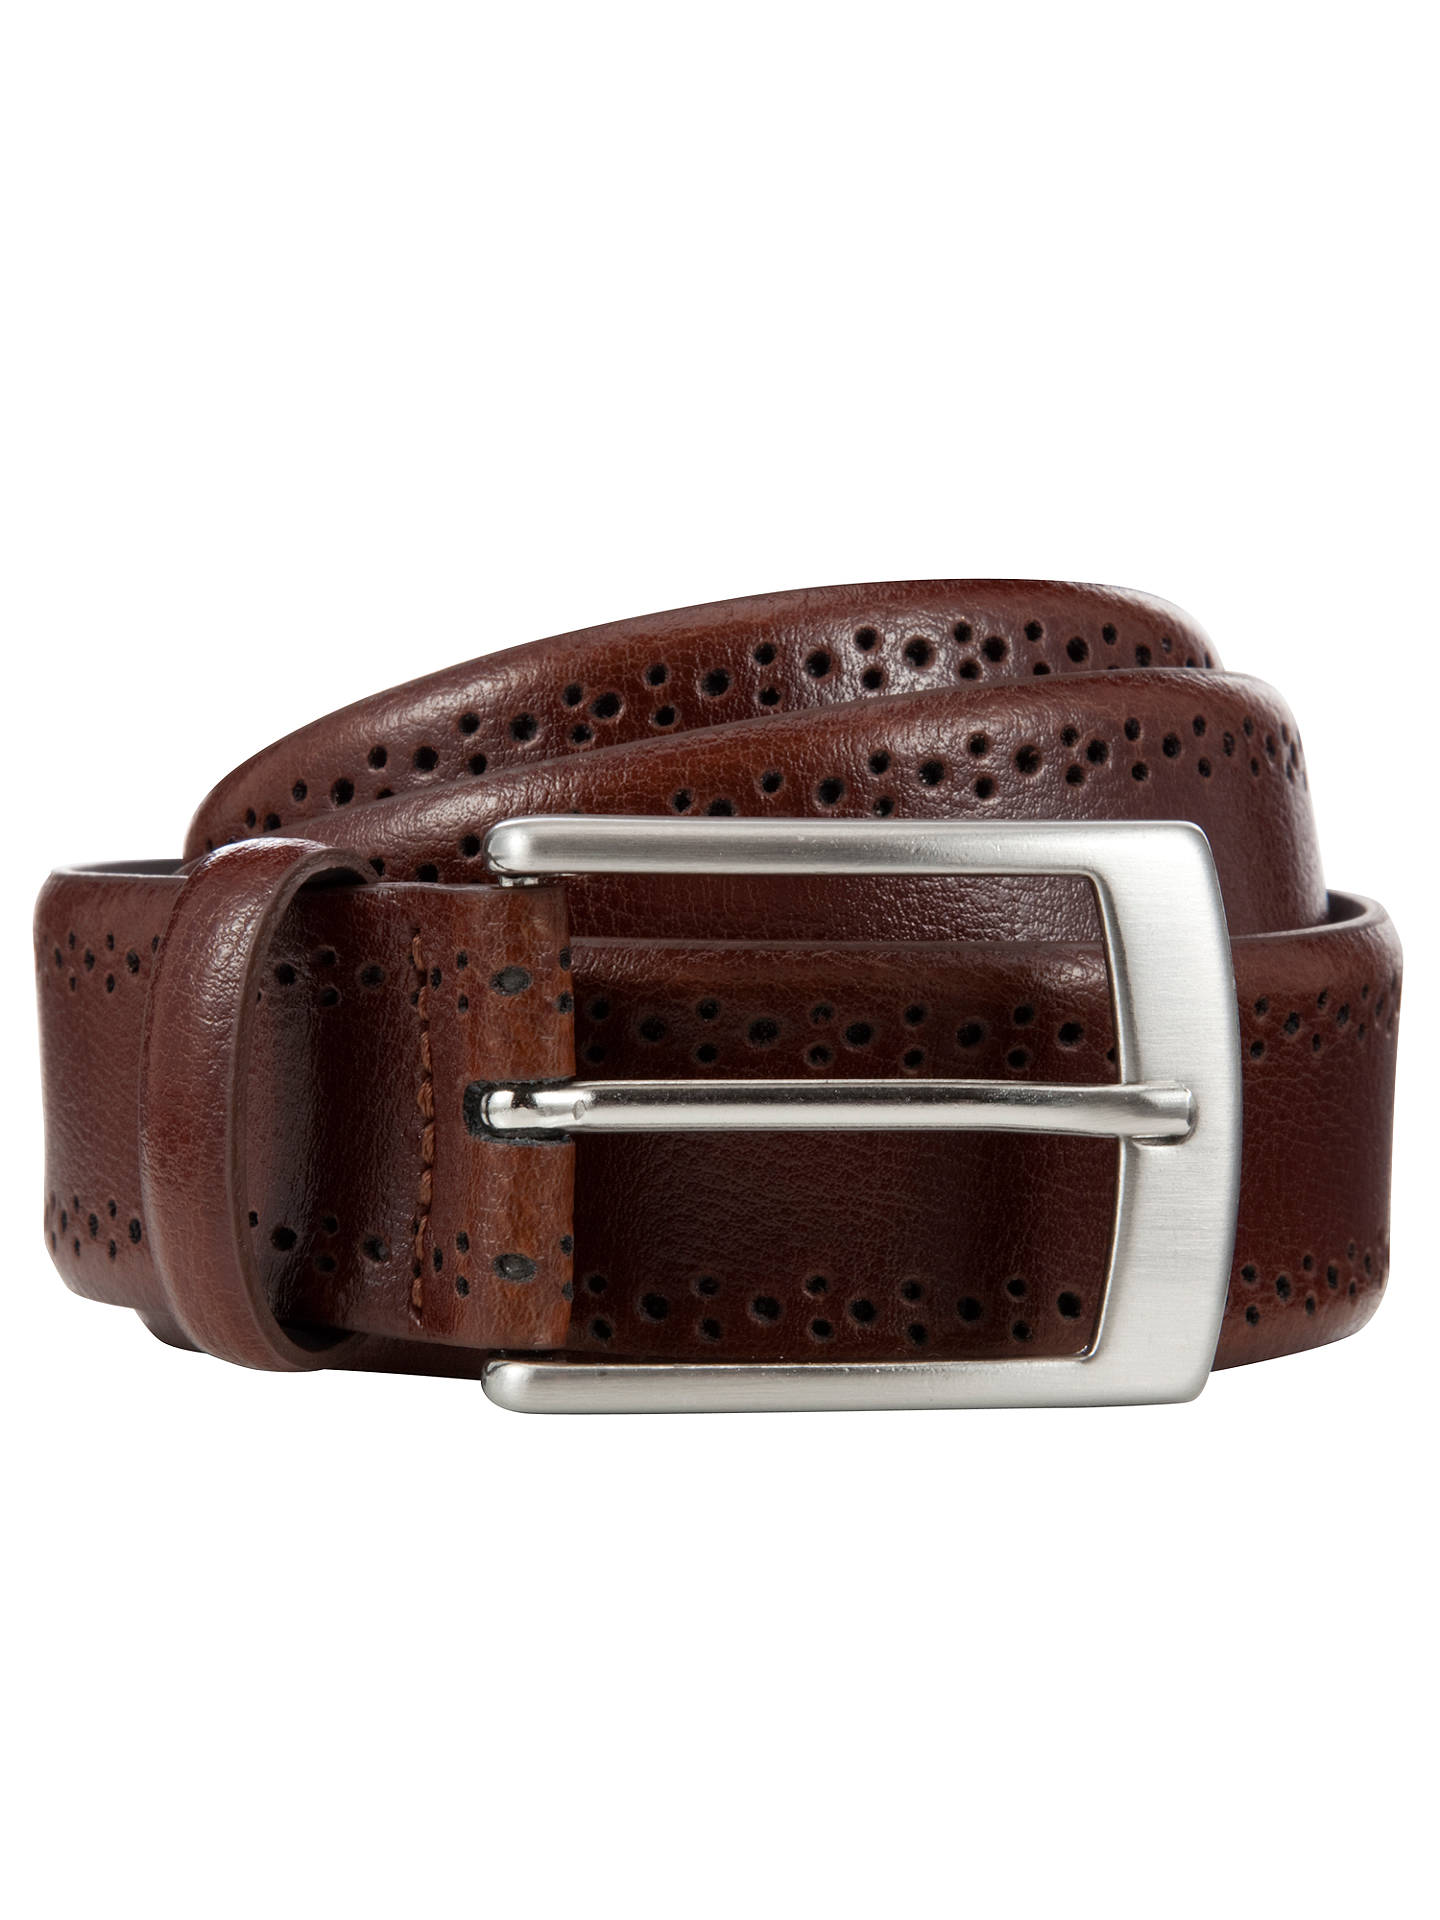 BuyJohn Lewis & Partners Made In Italy Brogue Belt, Brown, S Online at johnlewis.com